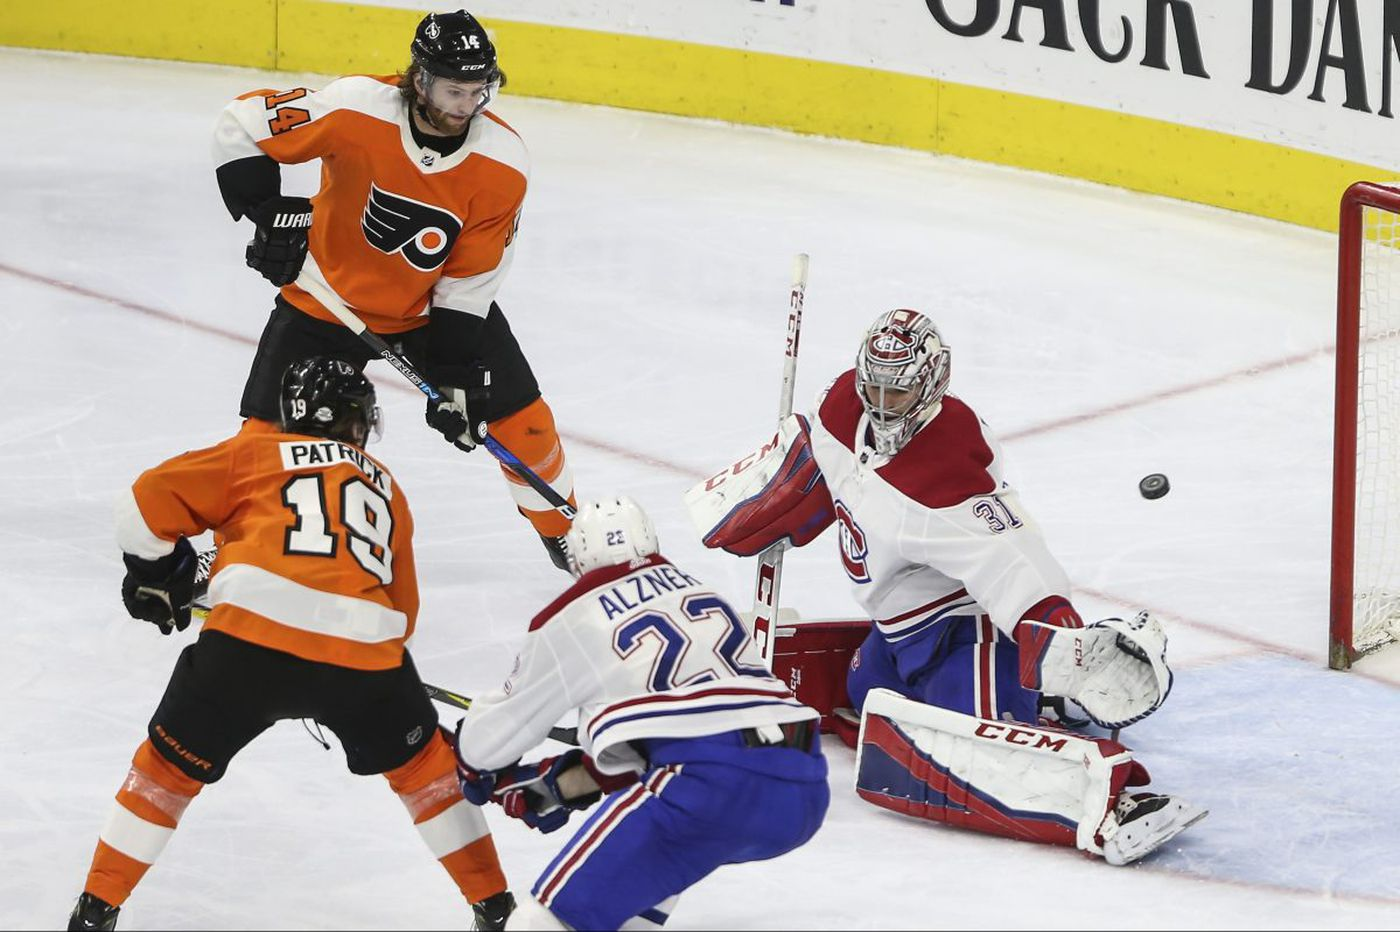 Quick hits from another Flyers OT win